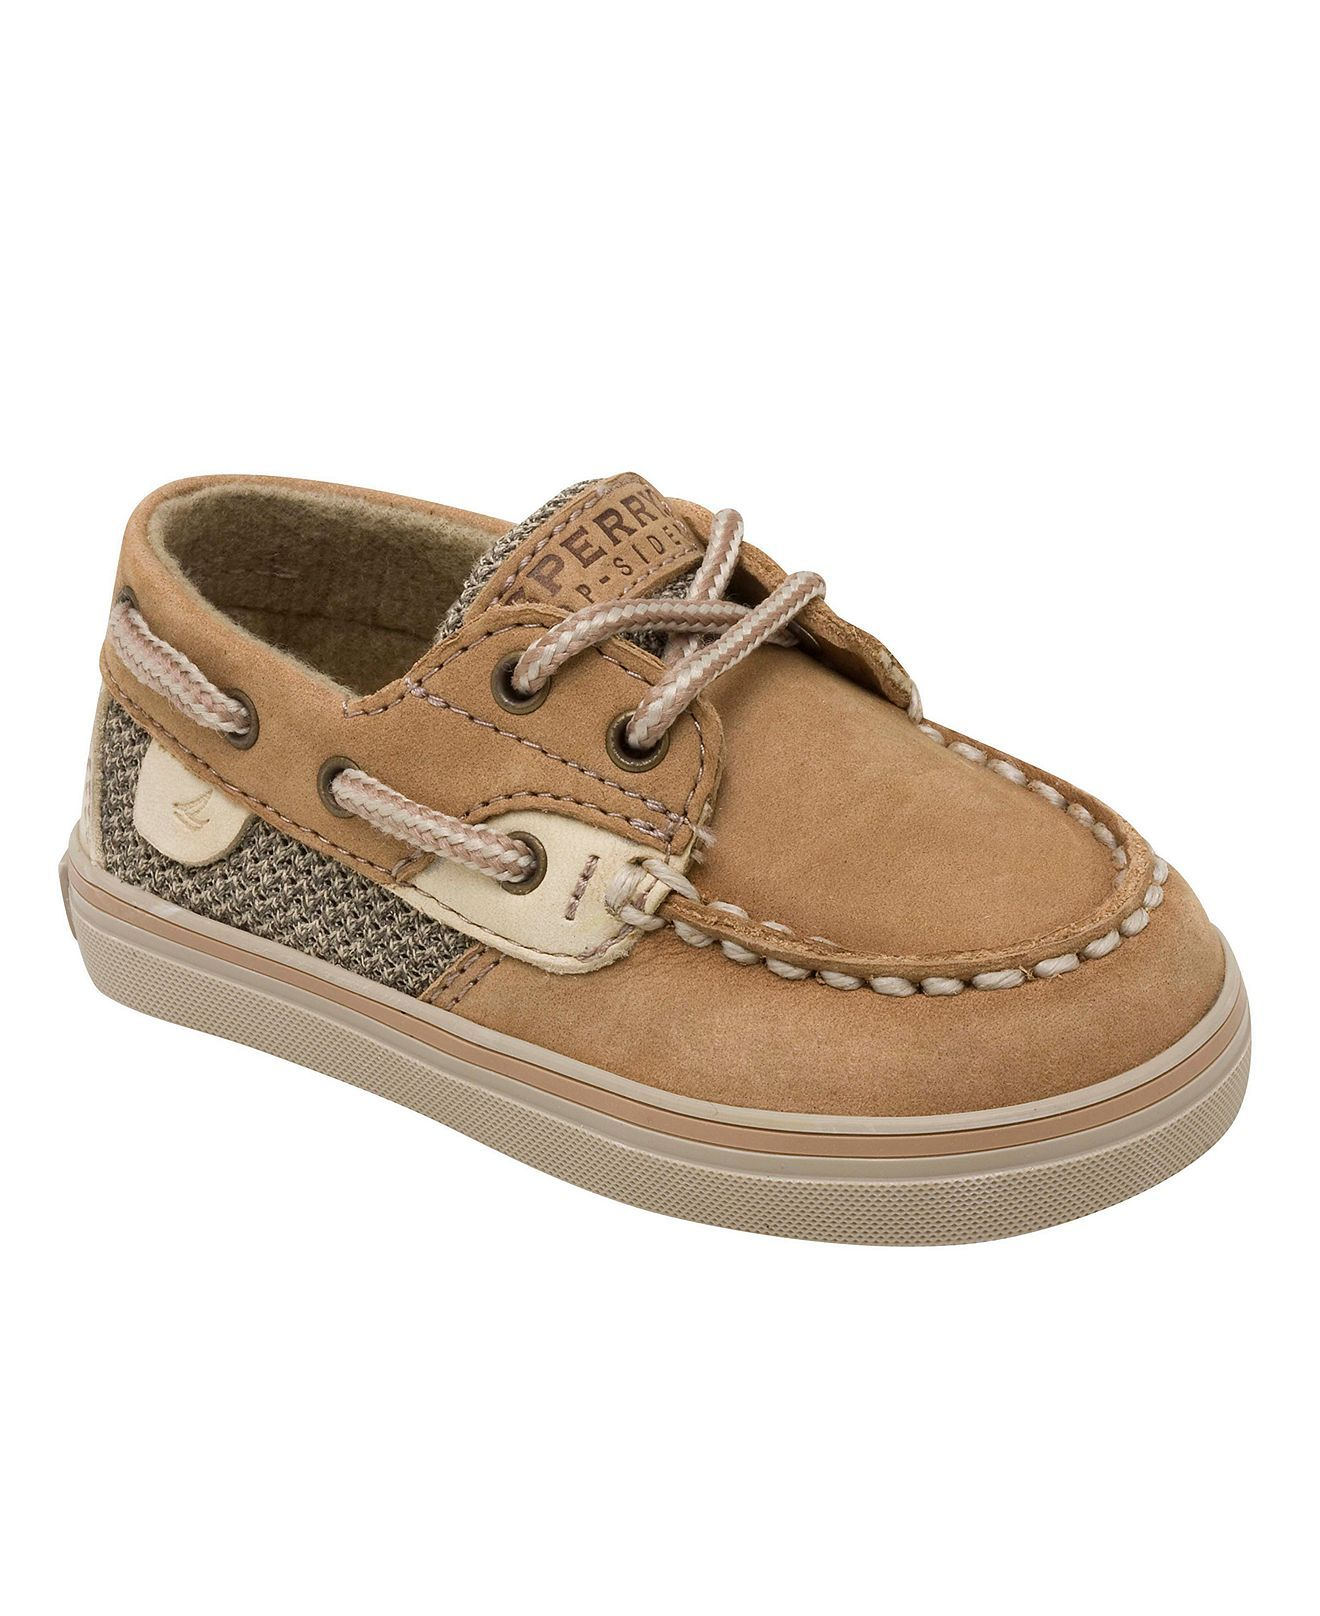 Sperry Baby Shoes Bluefish Pre walker Topsiders Kids Macy s